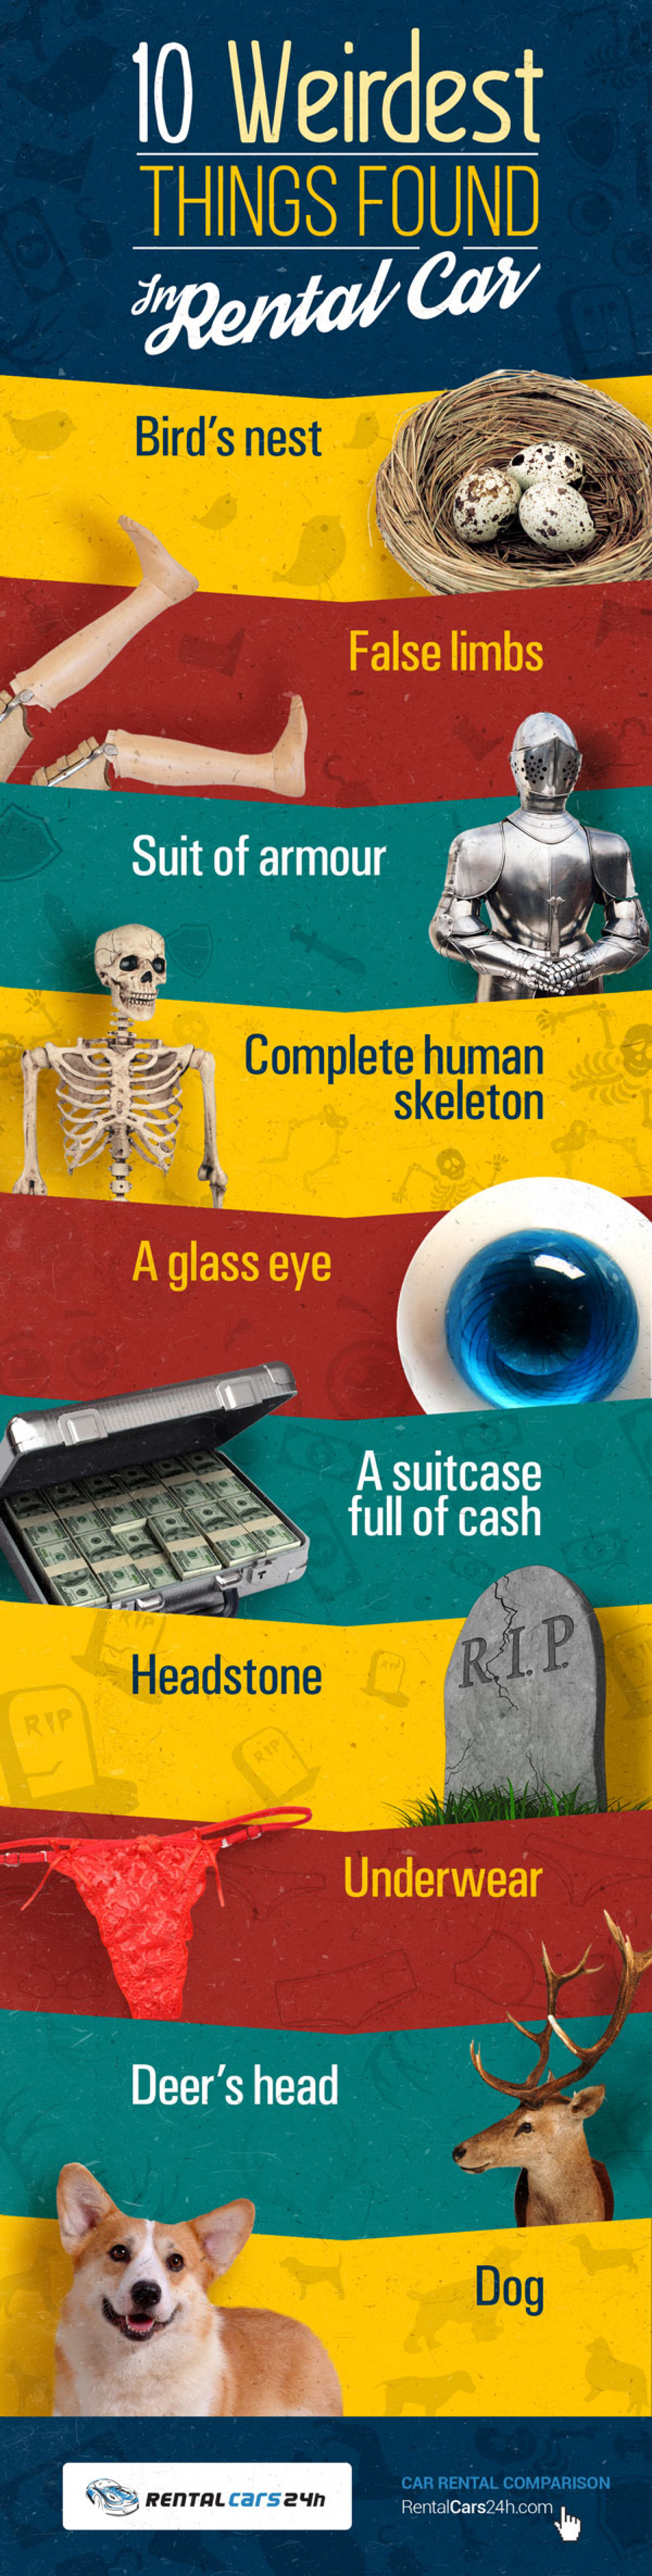 TOP 10 Weirdest Things Found In Rental Cars! Infographic